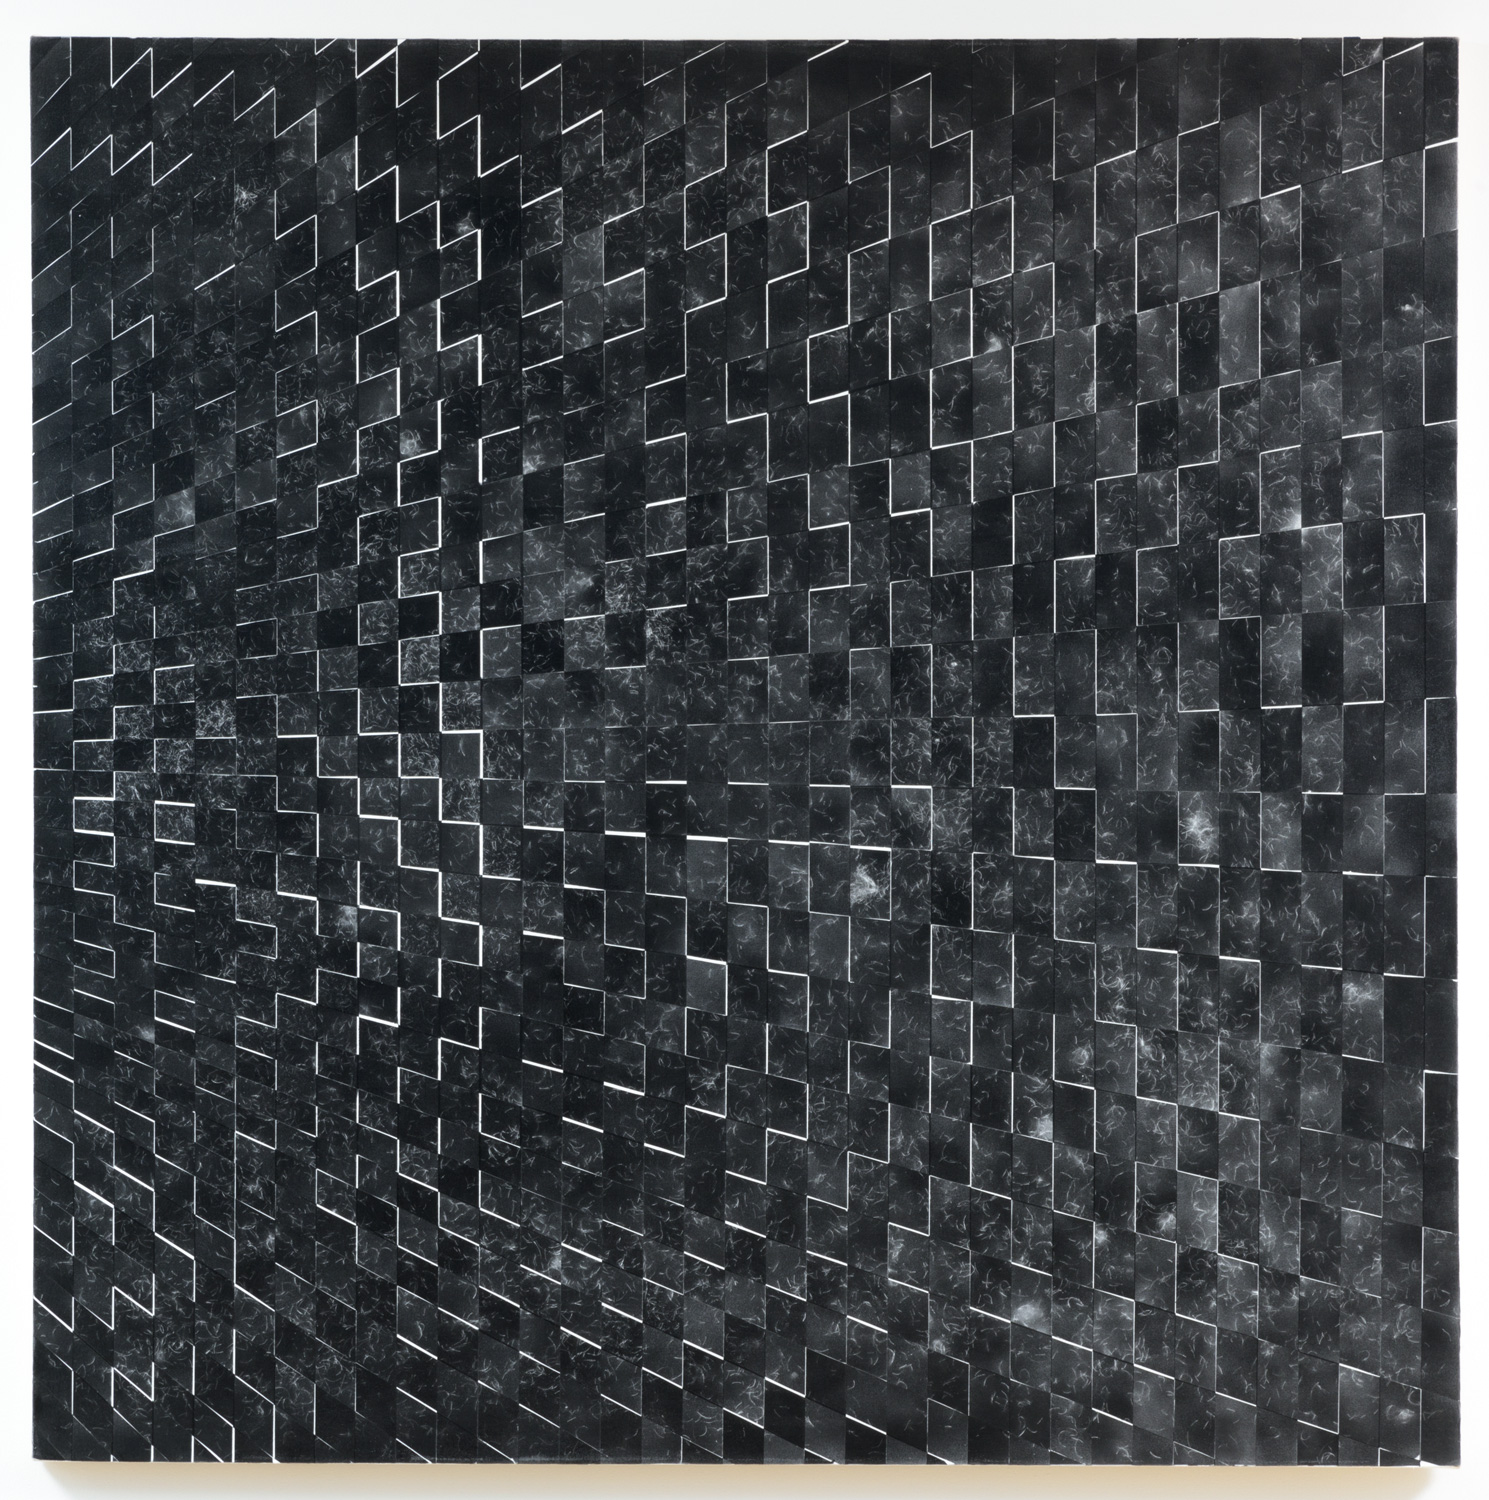 Danny Jauregui   Untitled 6  (2015) Enamel and human hair on canvas, 60 x 60in.